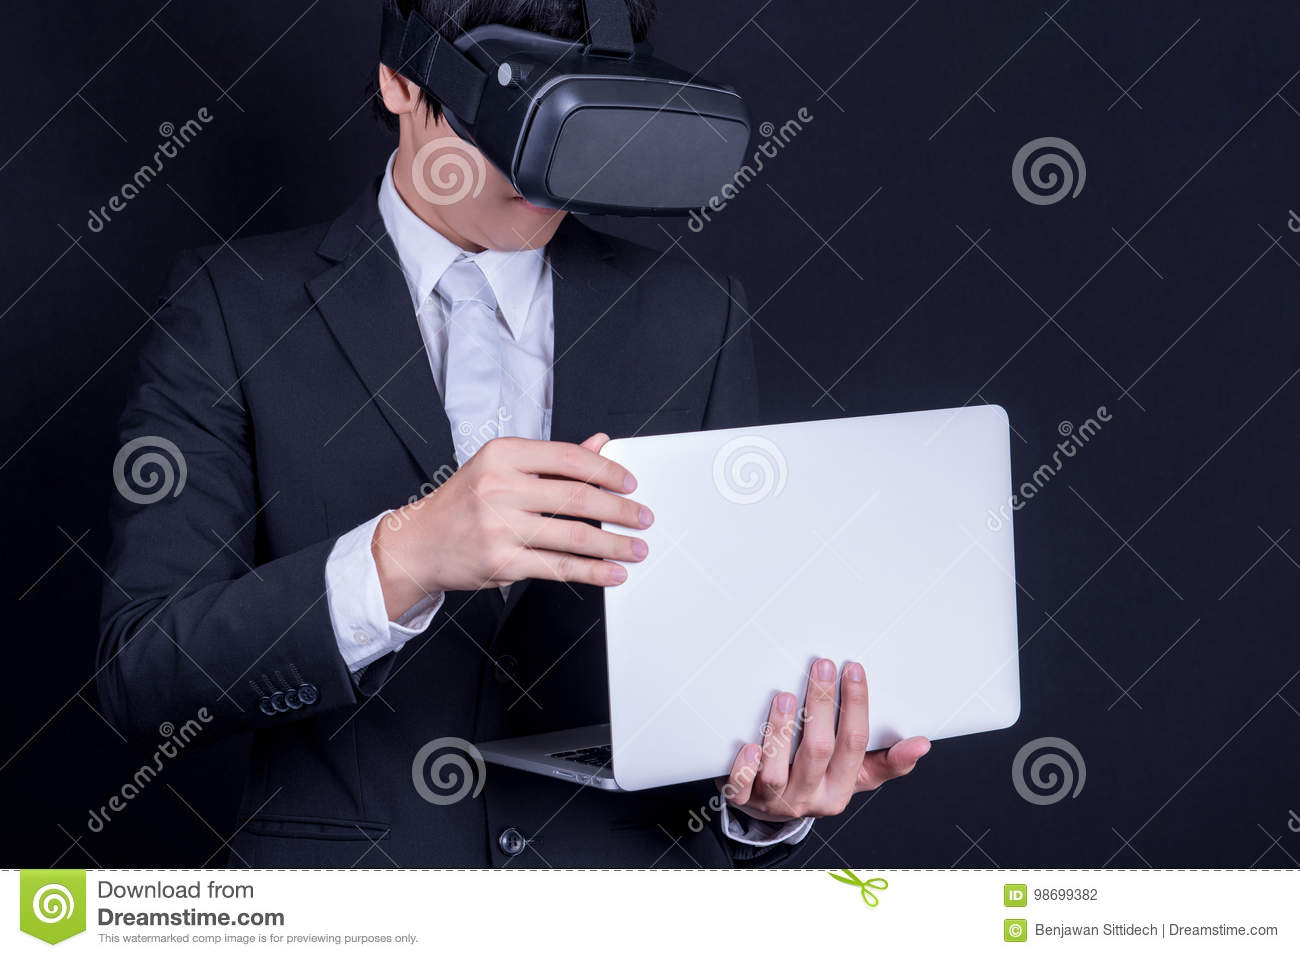 Business man wearing suit playing virtual reality goggles